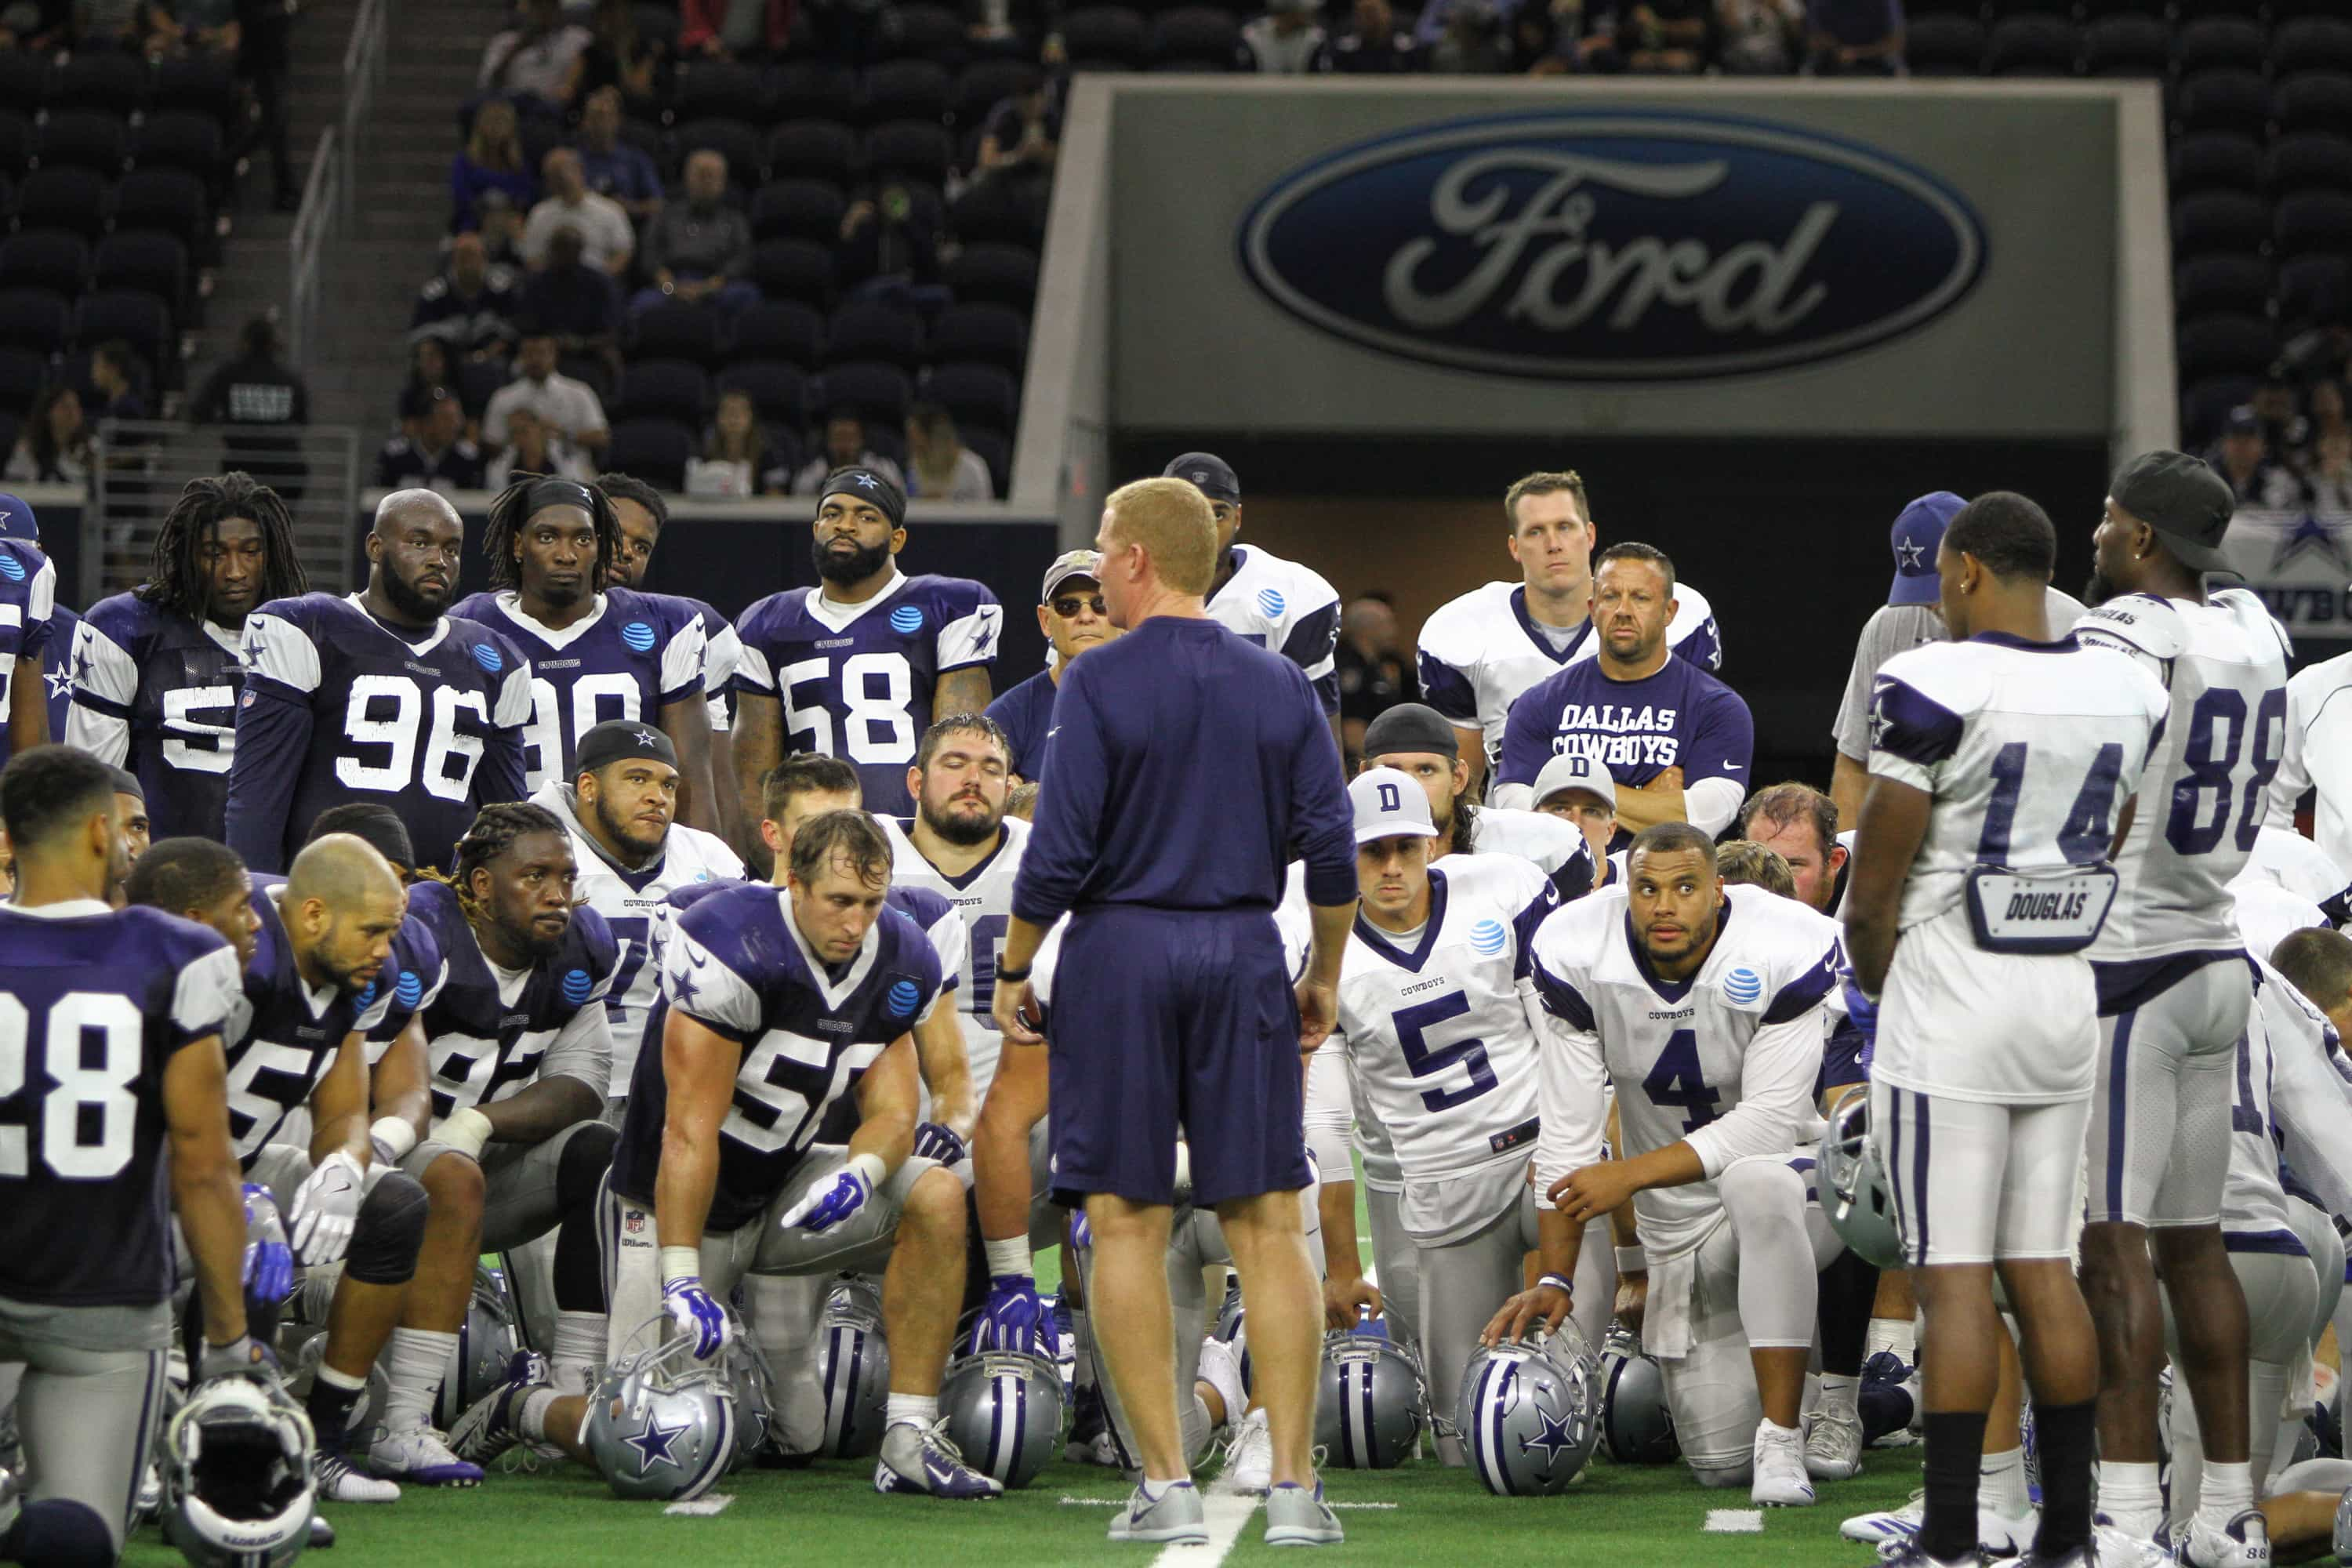 2017 Dallas Cowboys Training Camp at The Star in Frisco